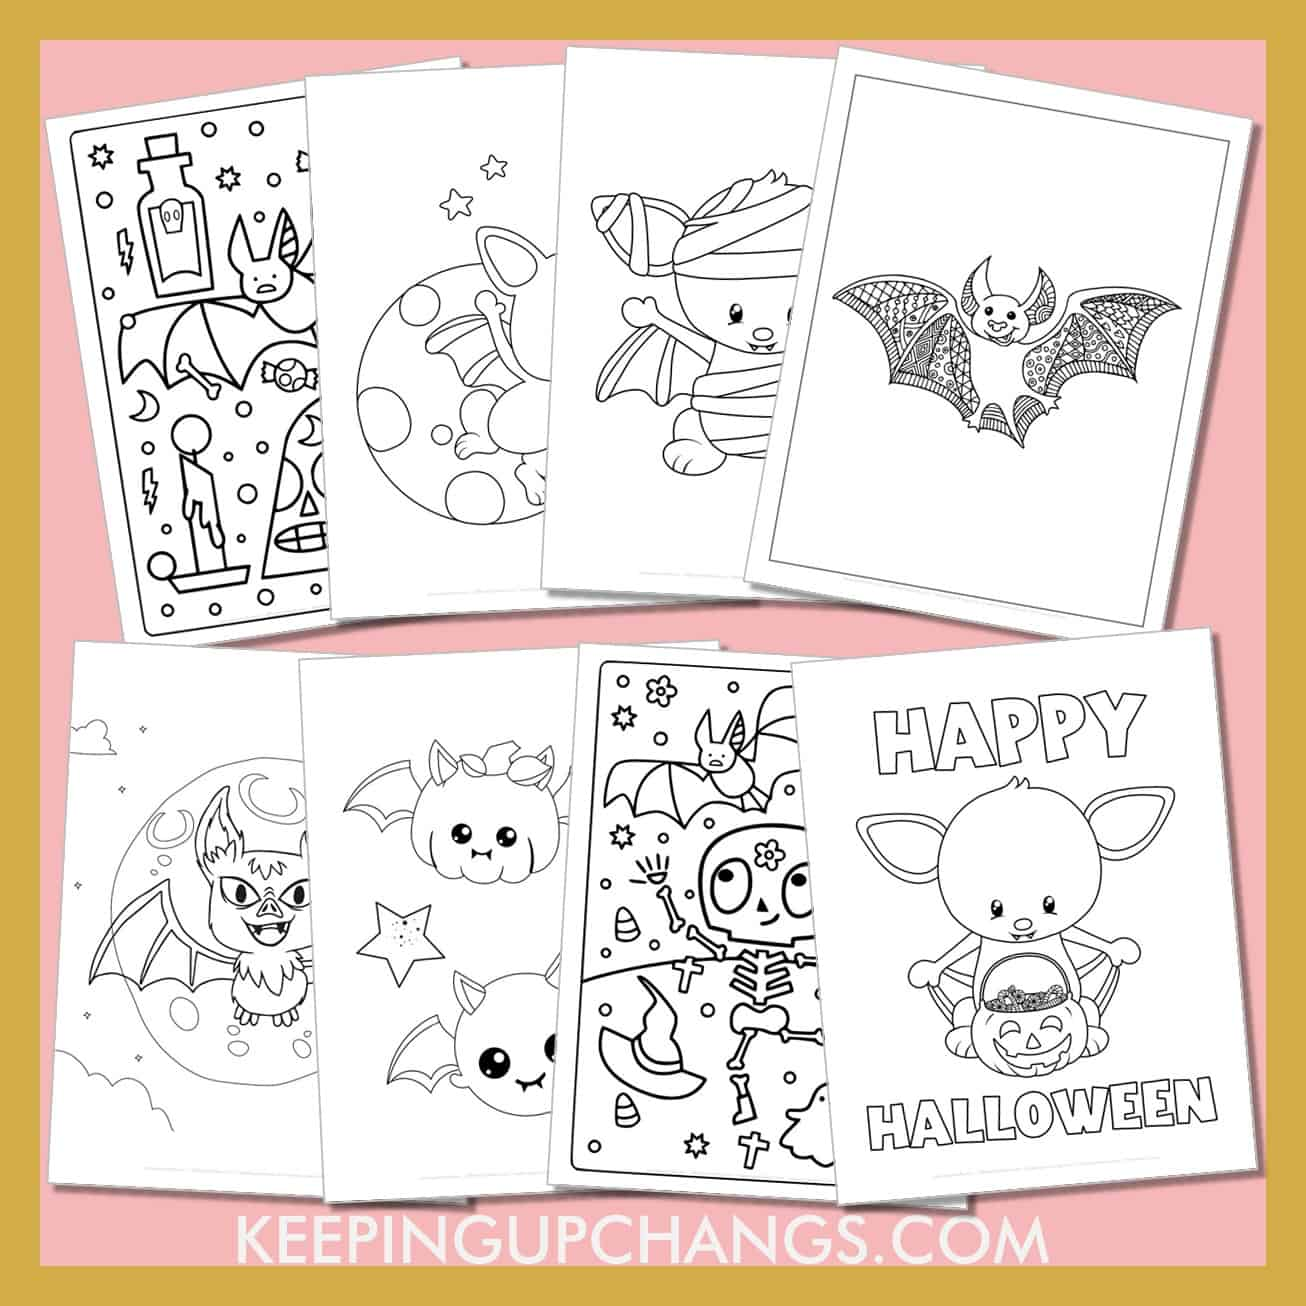 bat colouring sheets including cute clip art for kids to detailed zentangle mandala for adults.